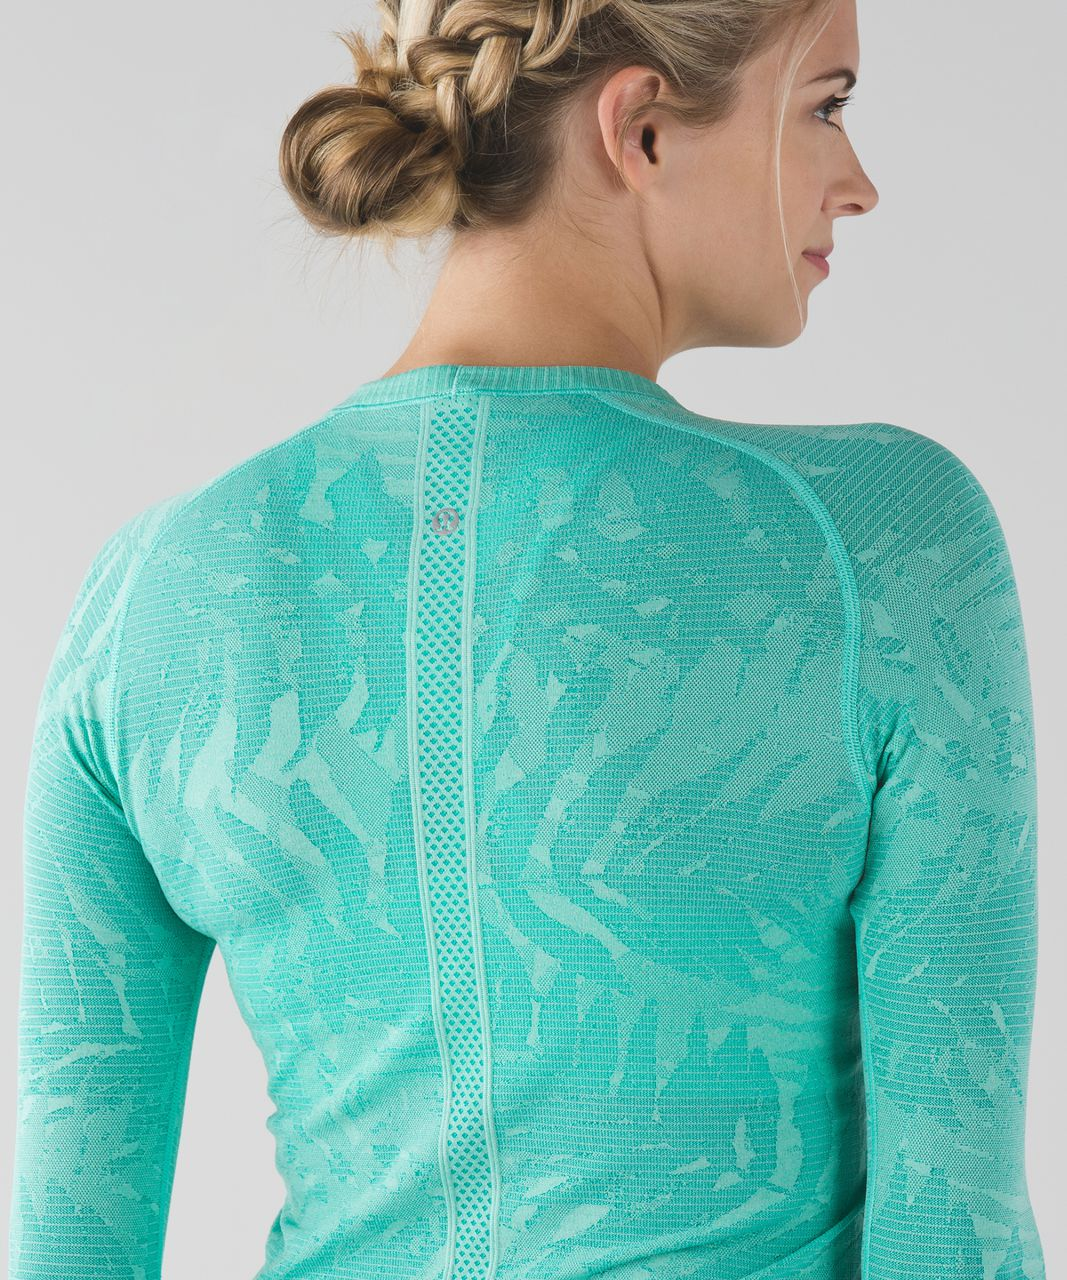 Lululemon Swiftly Tech Long Sleeve Crew - Heathered Bali Breeze